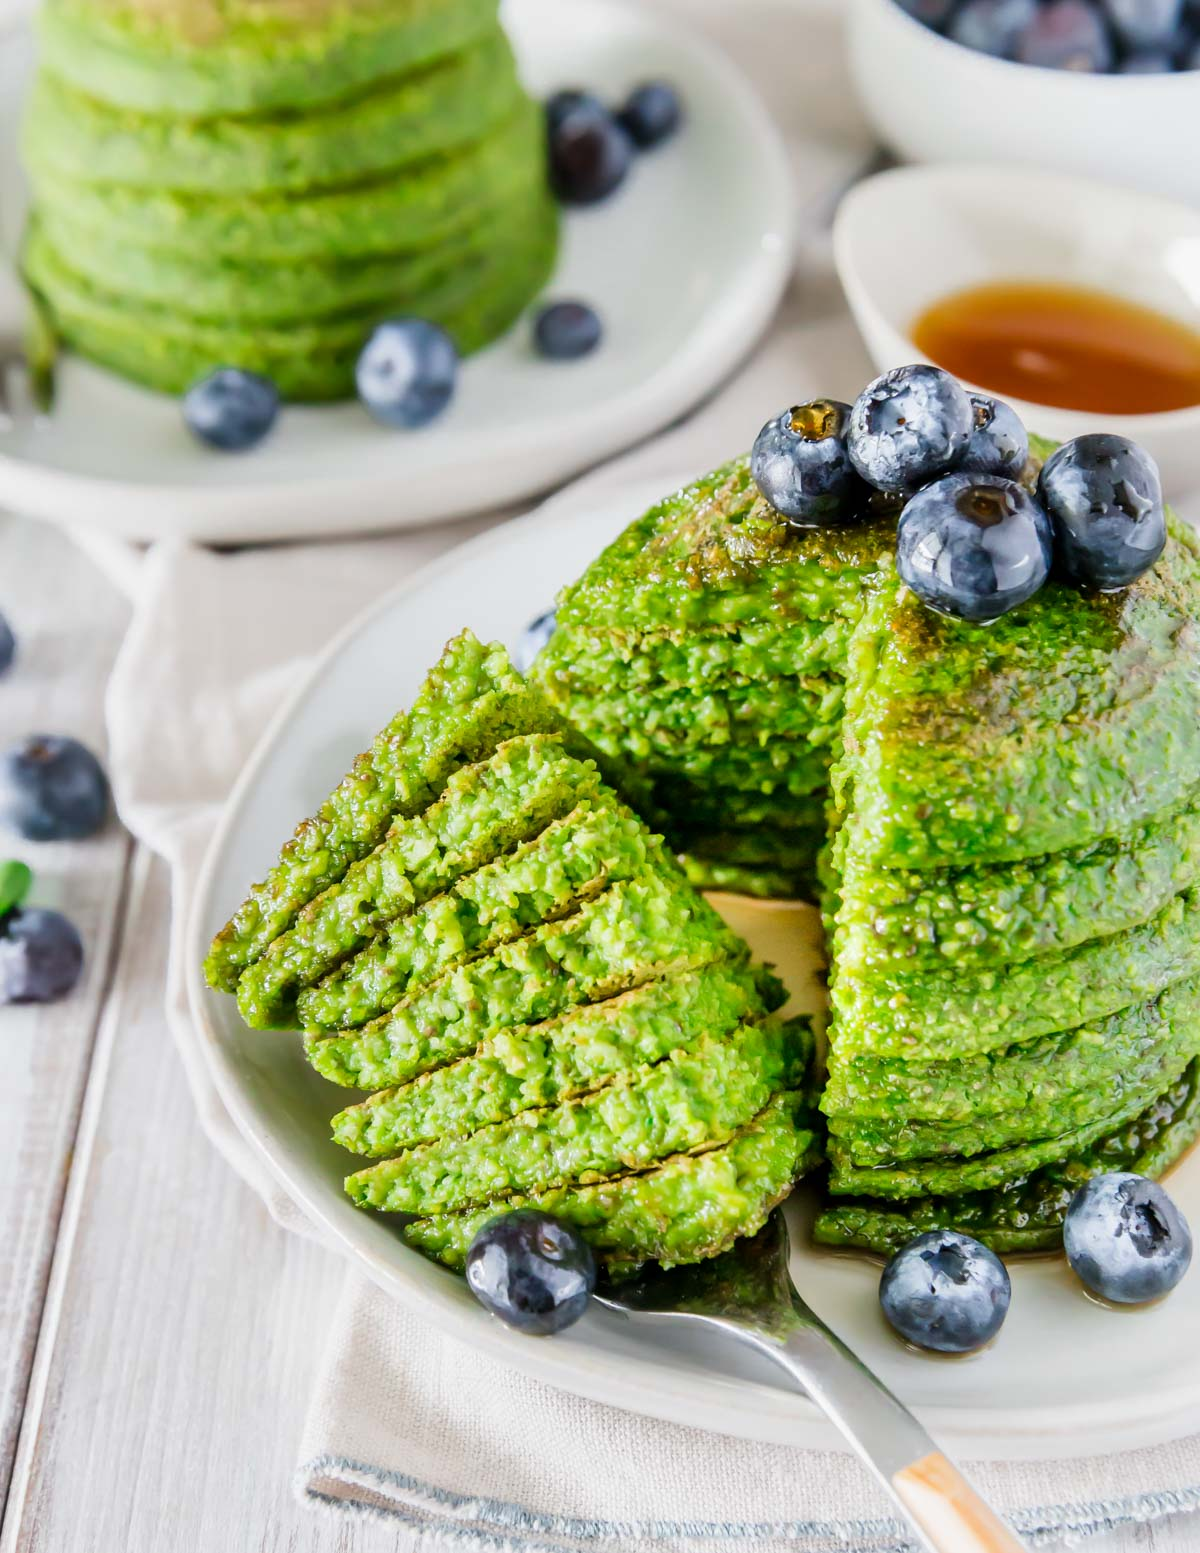 Moist and fluffy spinach pancakes are a healthy and fun breakfast option with this easy recipe.